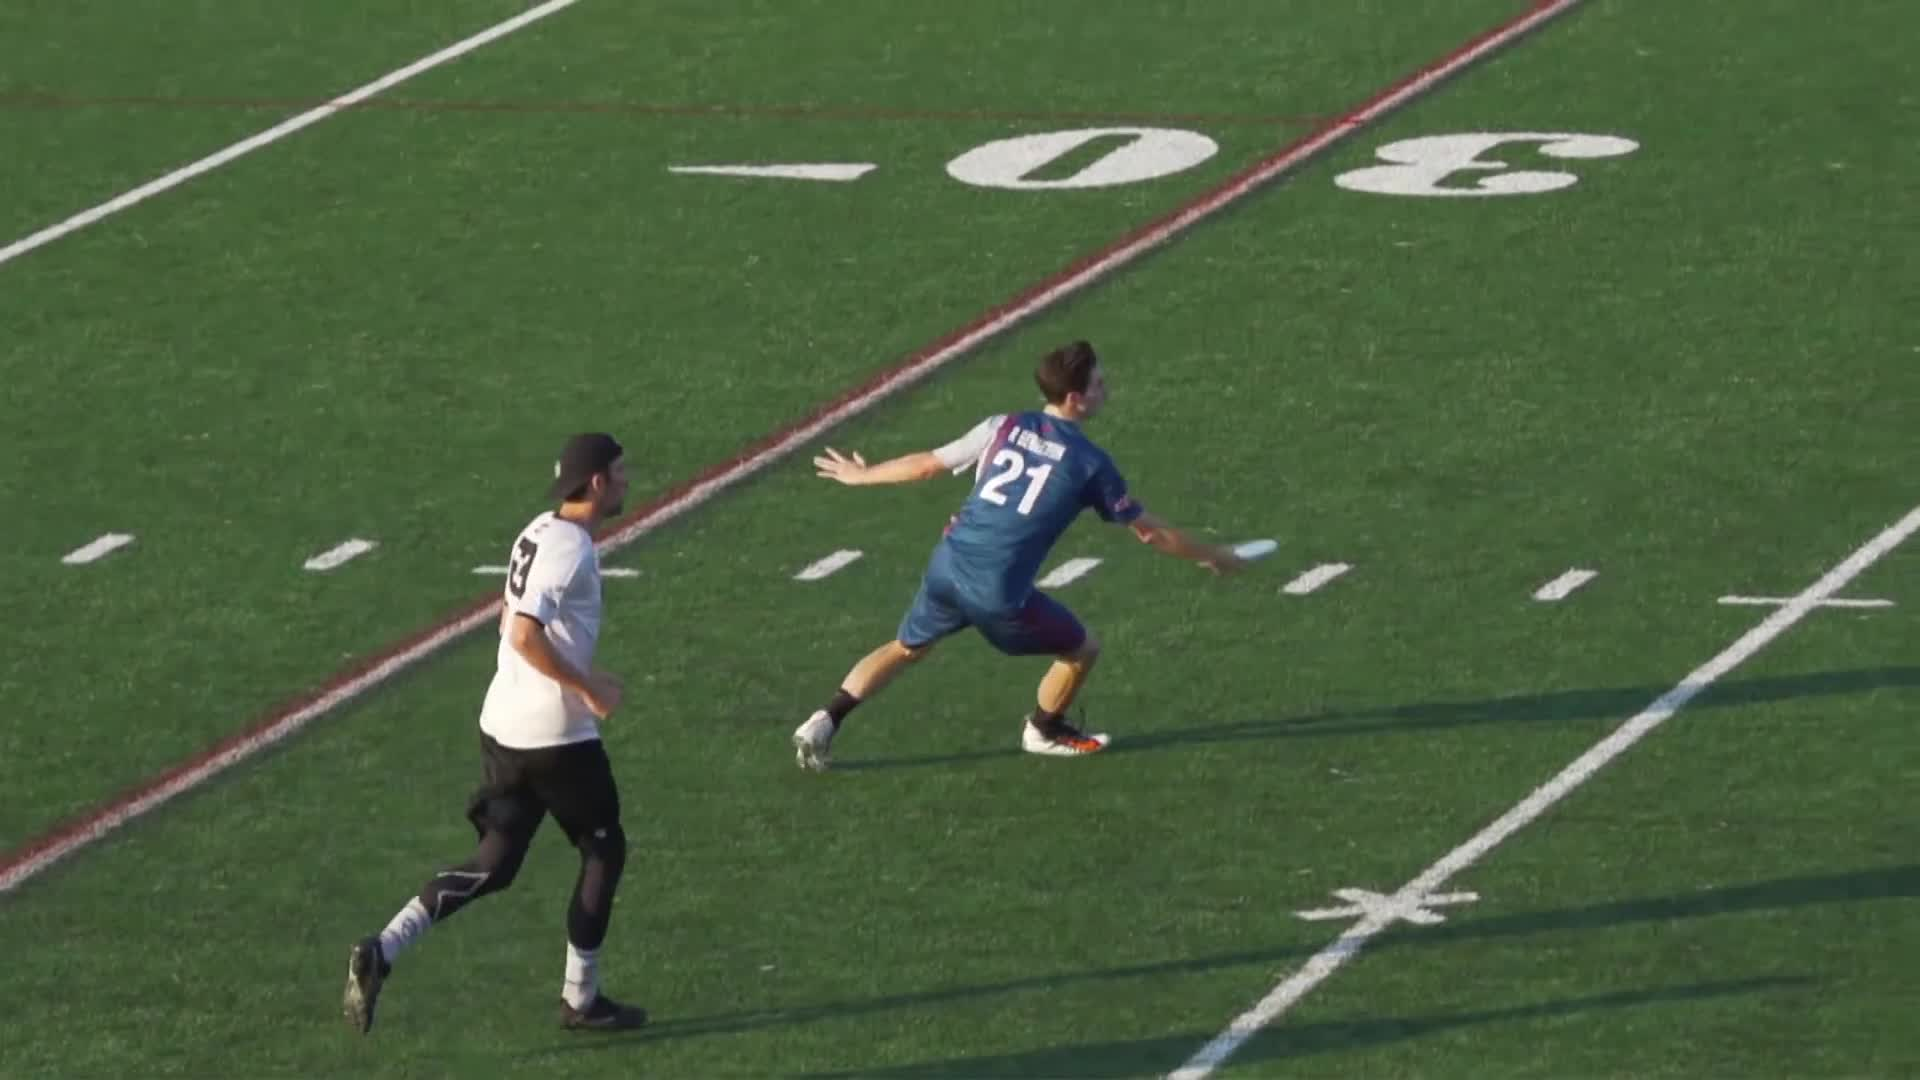 Sports, TheAUDLChannel, american ultimate disc league, audl, highlight reel, highlights, sports, theaudlchannel, top 10, ultimate, ultimate frisbee, Ben Katz Speeding Bookends GIFs